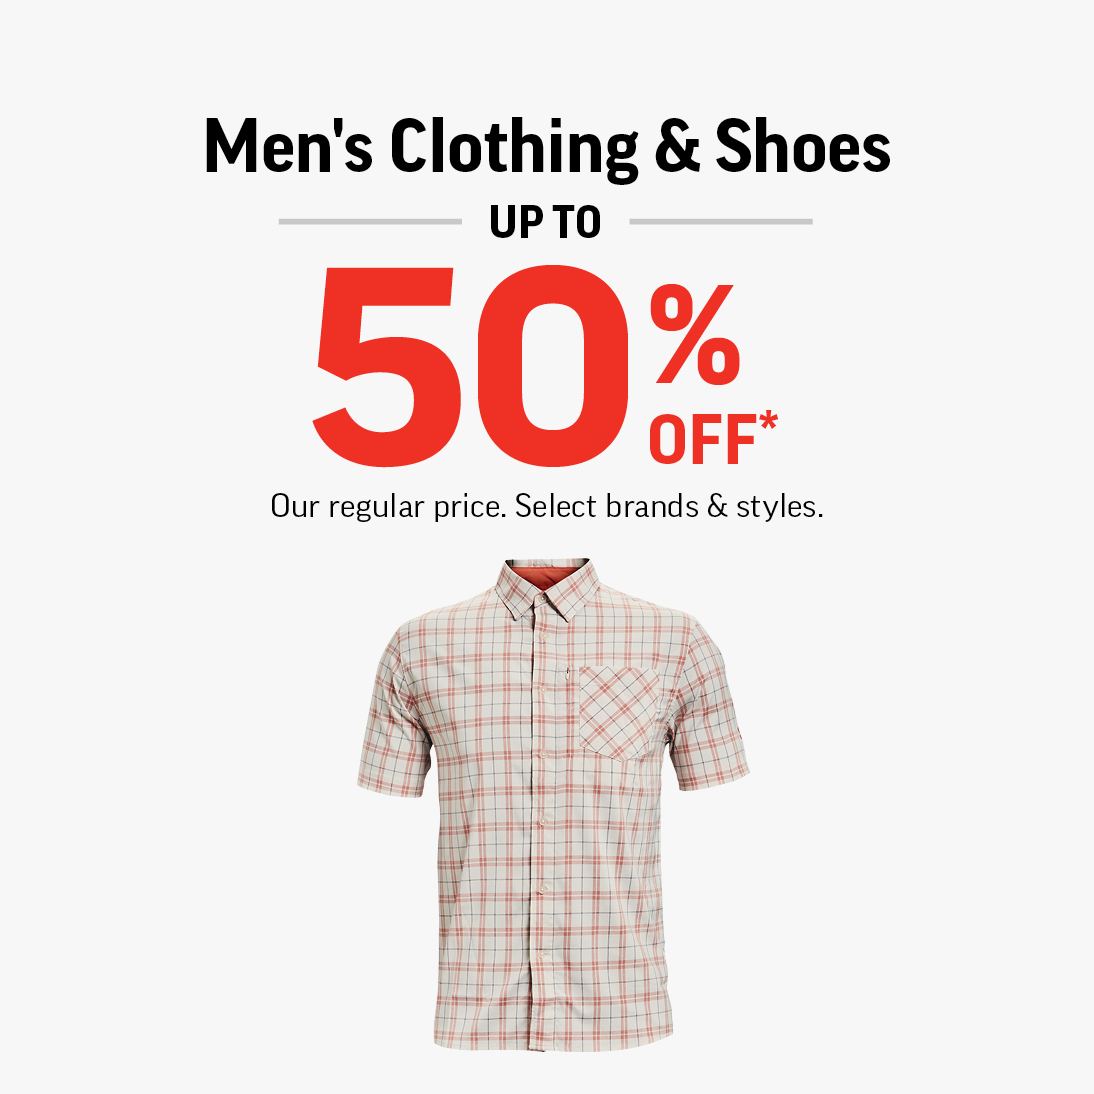 Men's & Clothing Shoes Up To 50% Off!